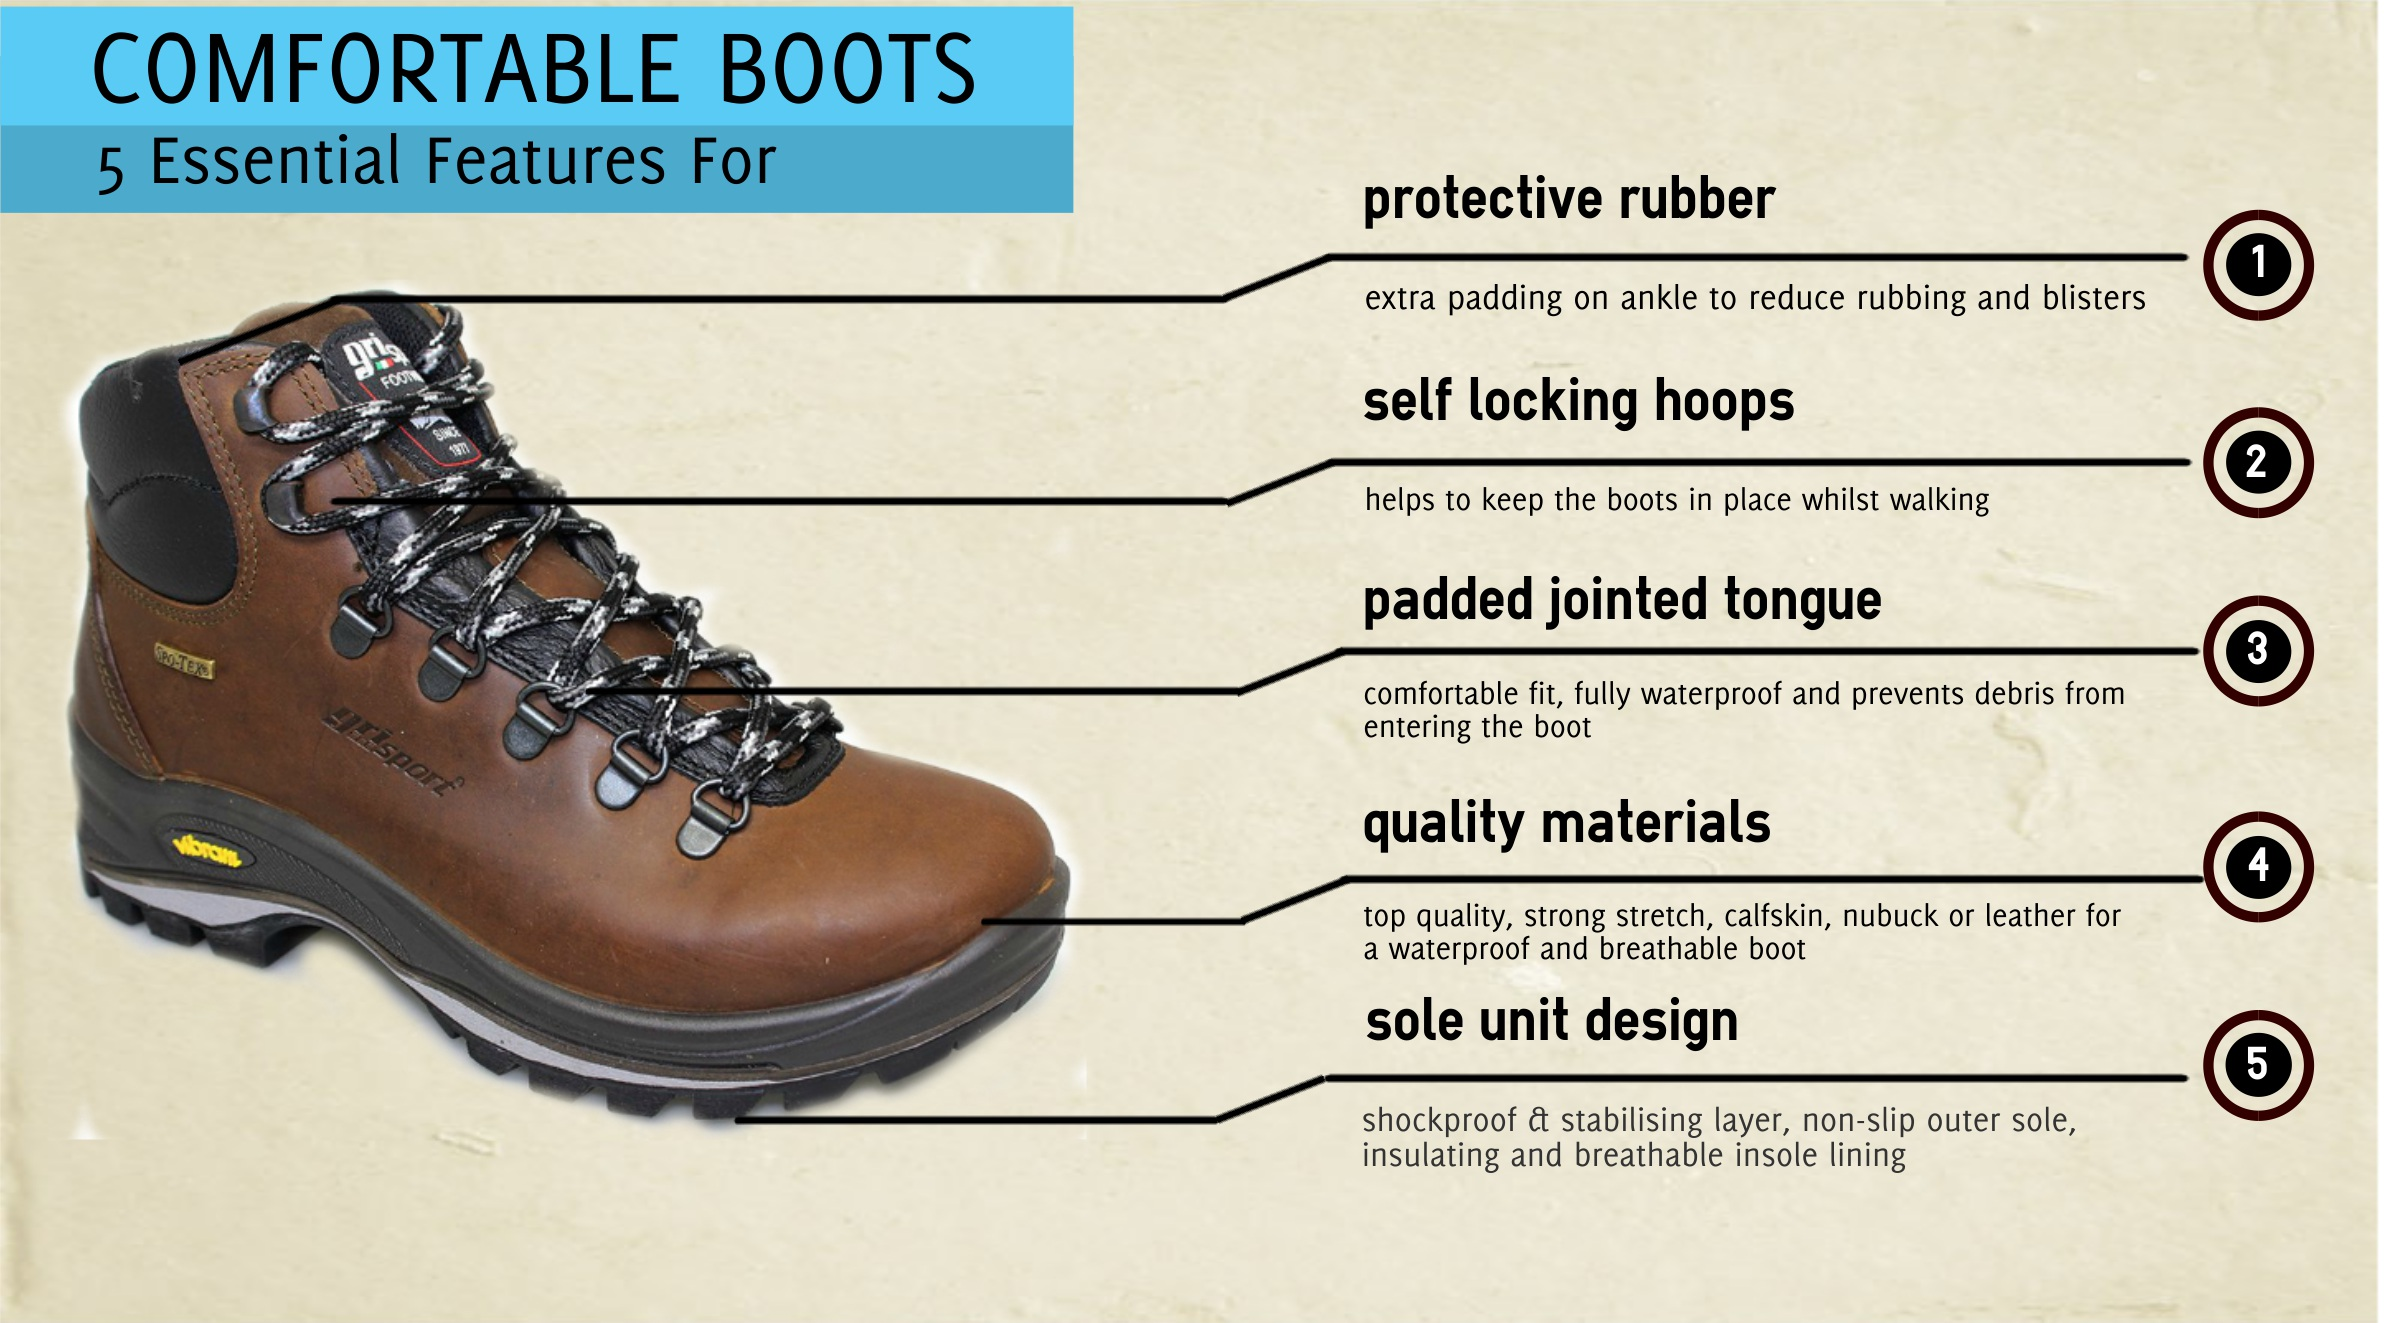 walking style you leisure to from comforter cute danner boots female town travel shoes comfortable hiking take boot trail womens